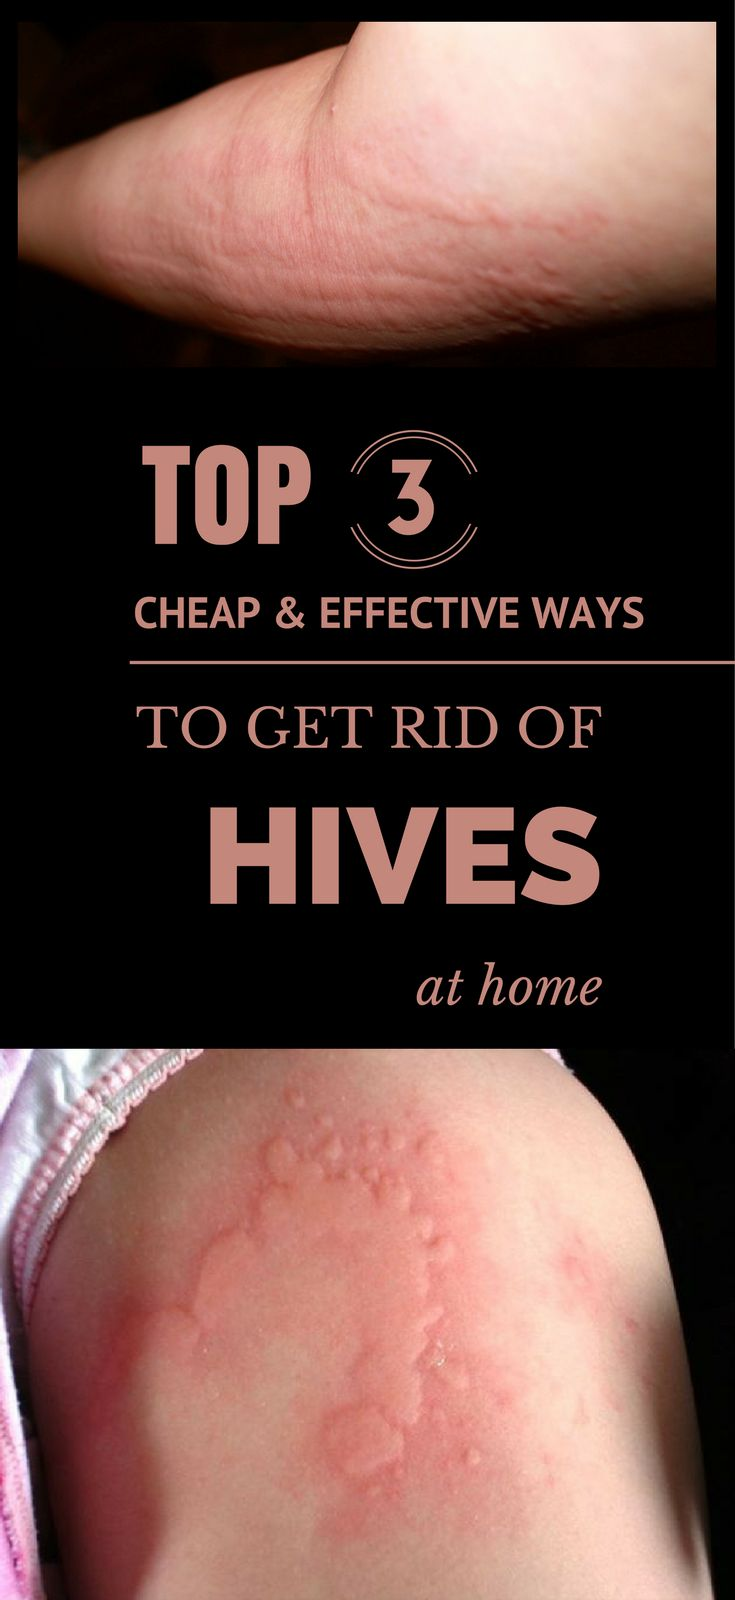 Hives are essentially an allergic reaction, caused when your body produces too much histamine, which is a type of a protein. These attacks can be categorized as short-term, chronic or long-term hives. One can easily guess that these categories are so named based upon how long the sufferer typically suffers from an outbreak. Its size can be very tiny to several inches wide. Multiple hives can even appear to be connected to form very spacious bumps on the skin. Hives can be also caused by…